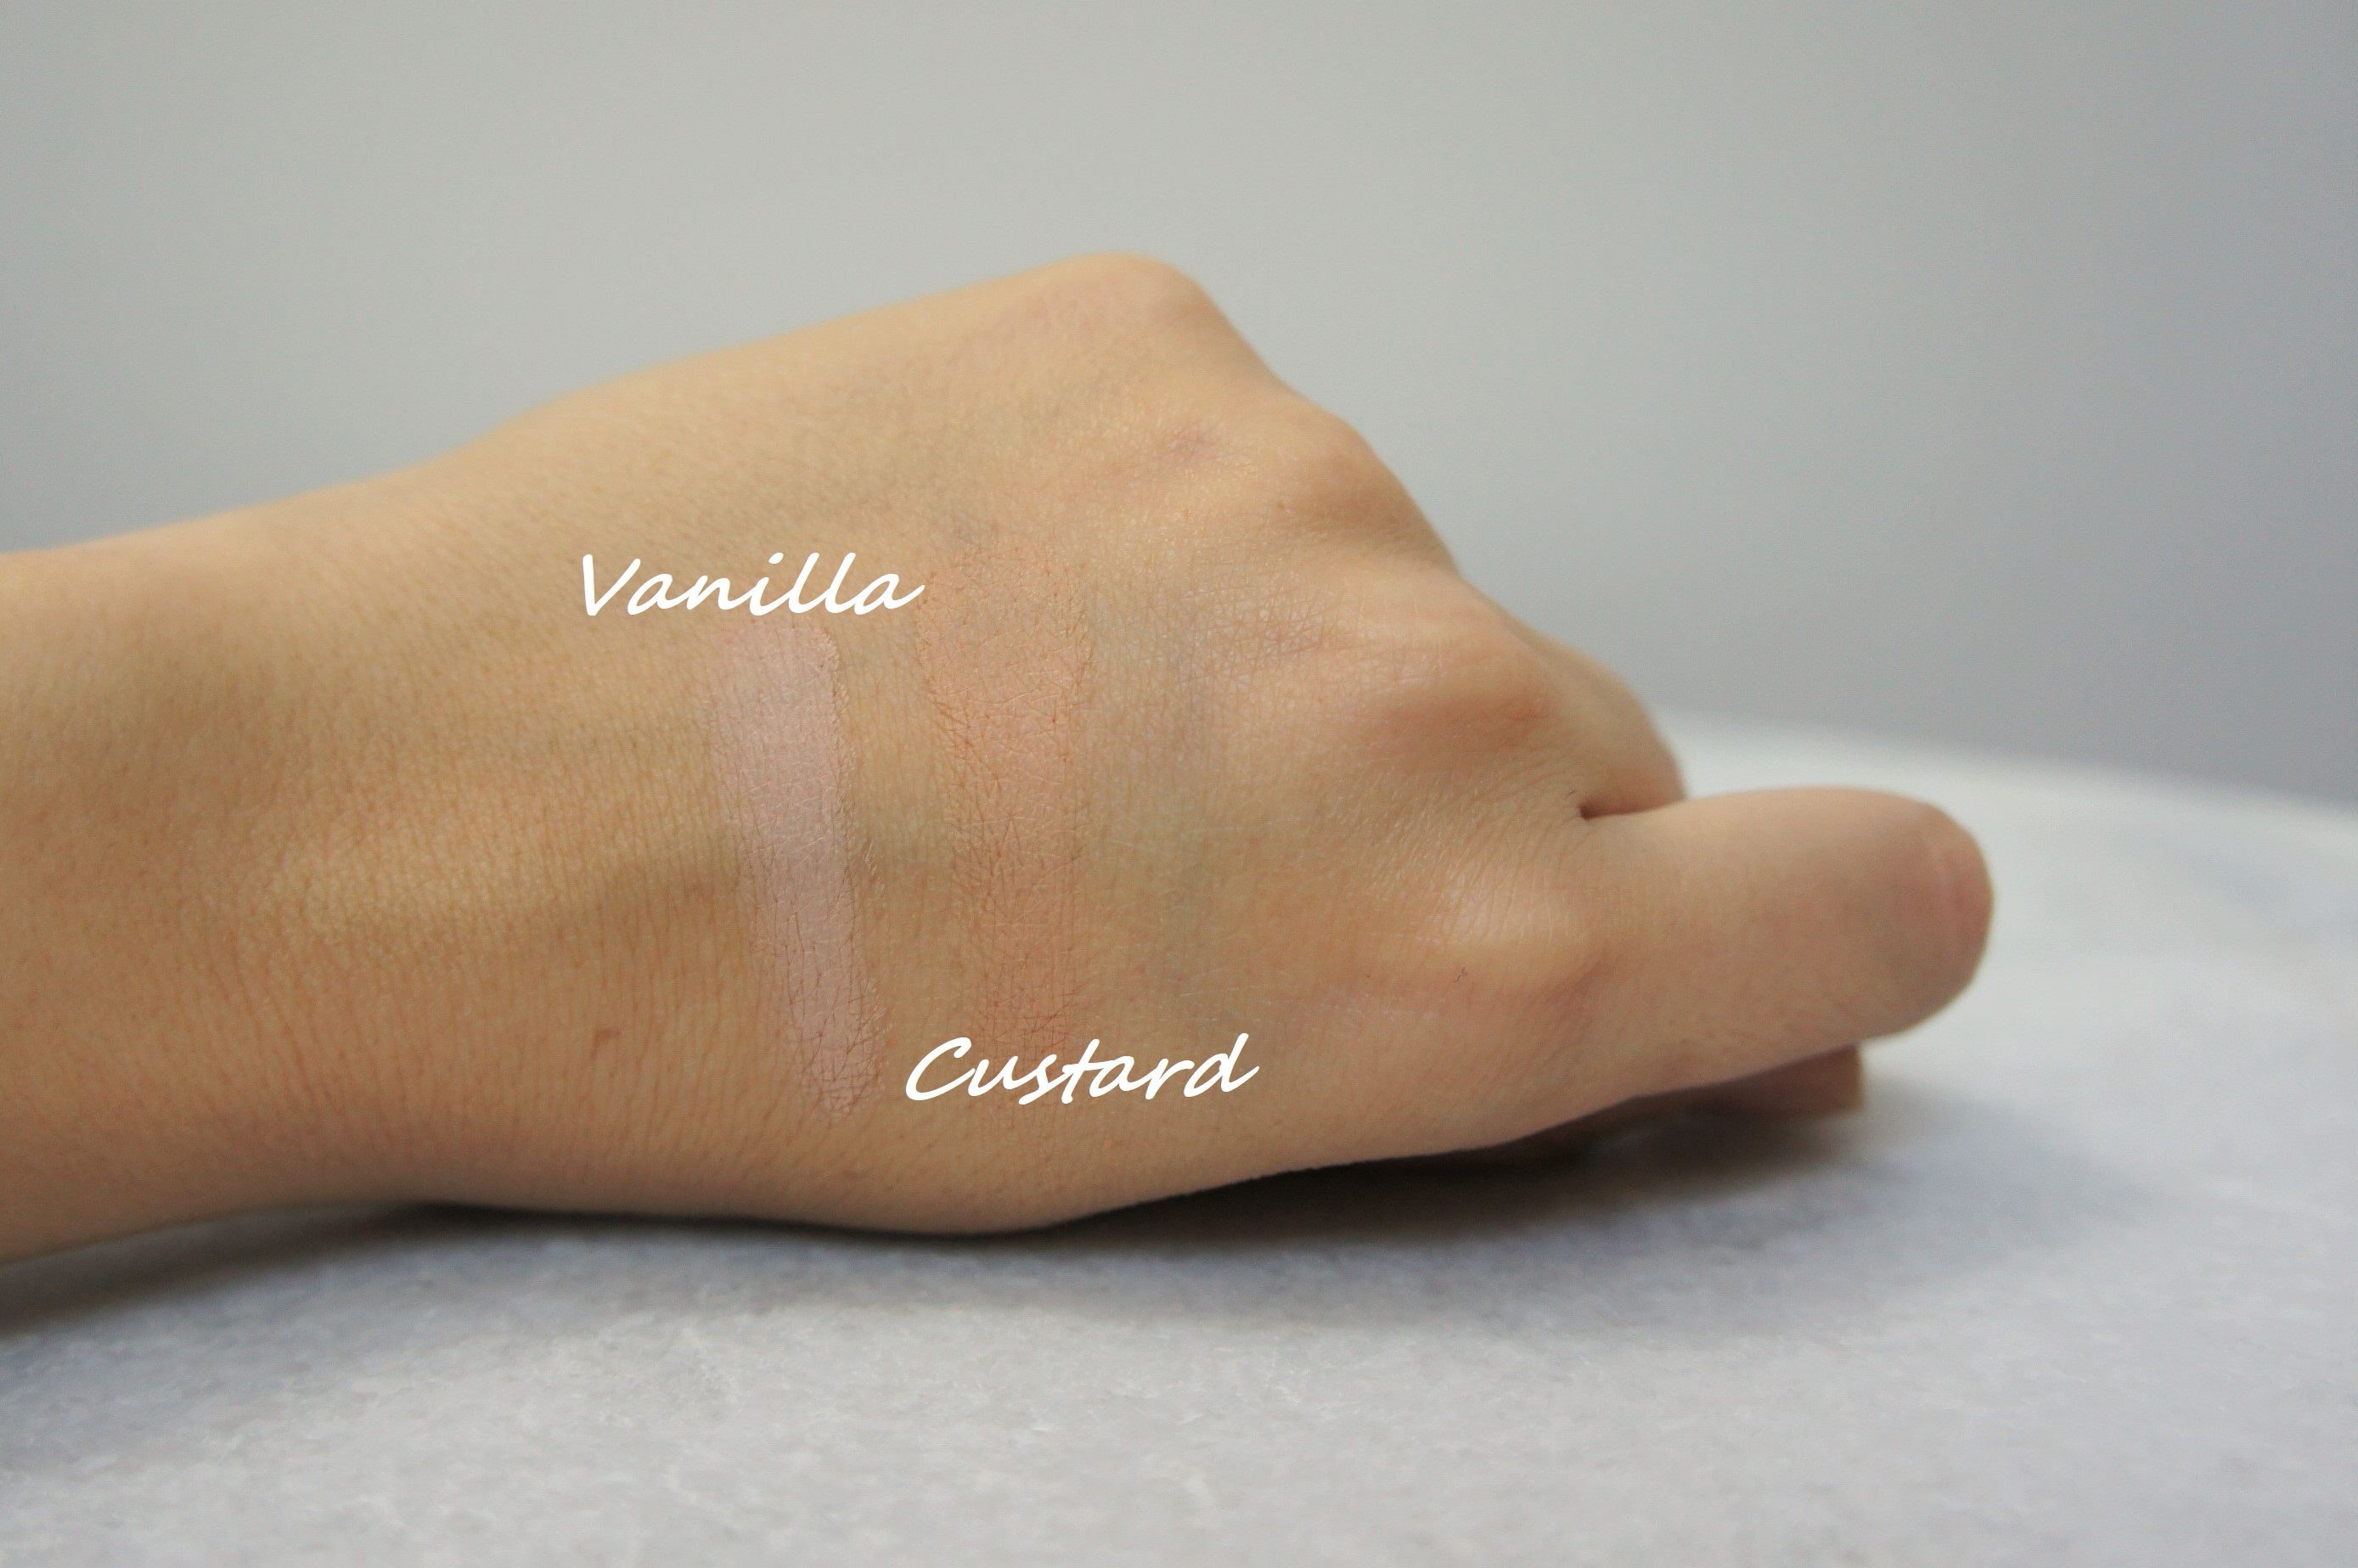 Nars Soft Matte Complete concealer in Vanilla and Custard